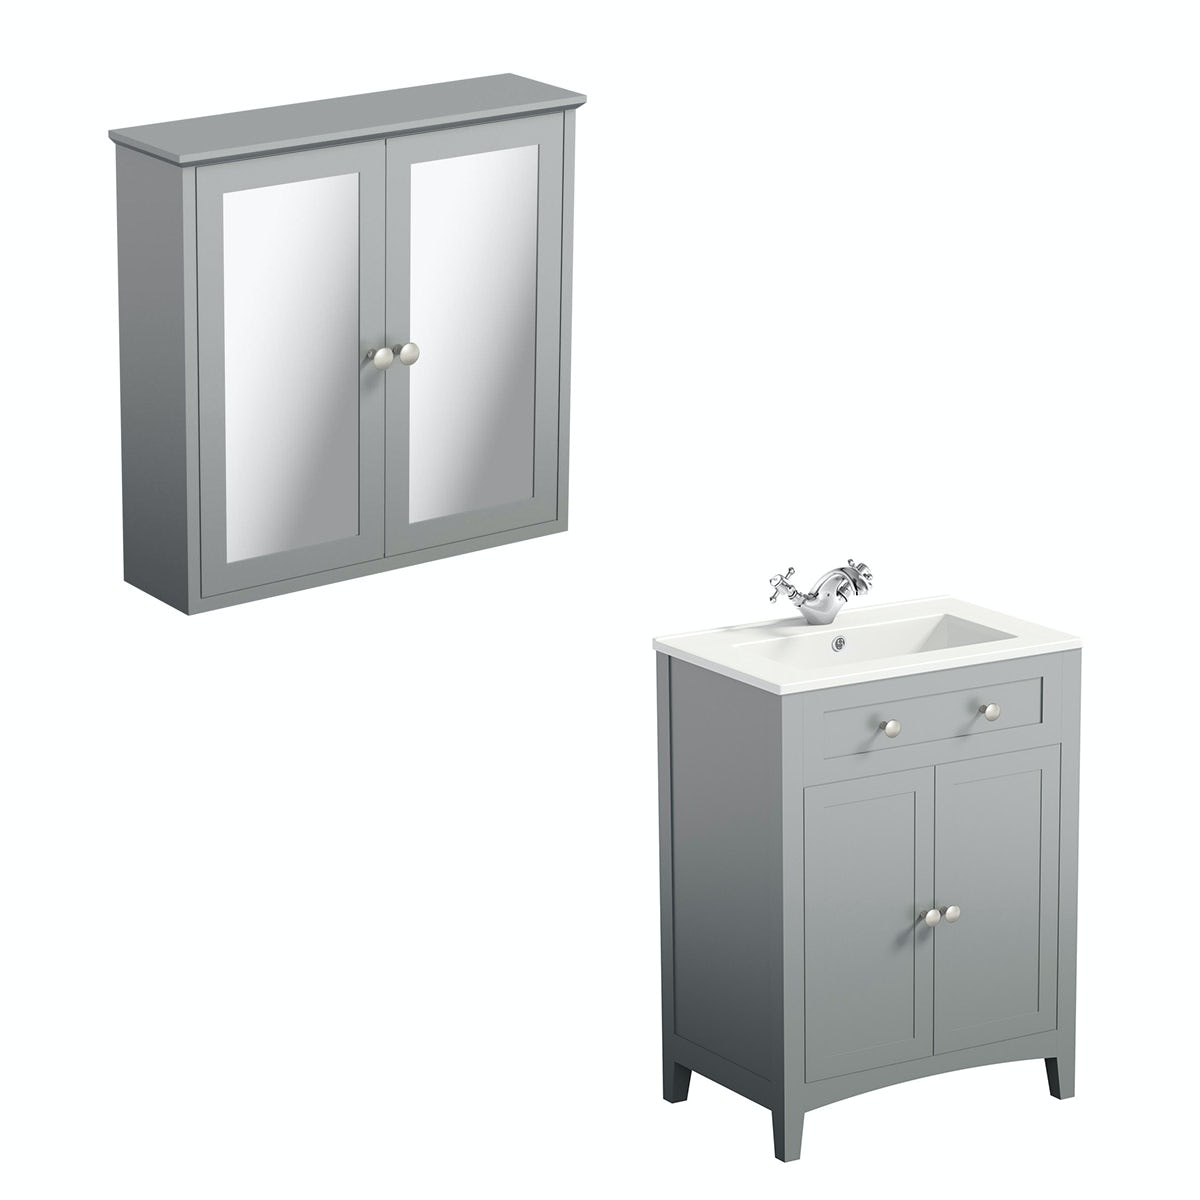 Camberley Grey 600 vanity unit and mirror cabinet offer